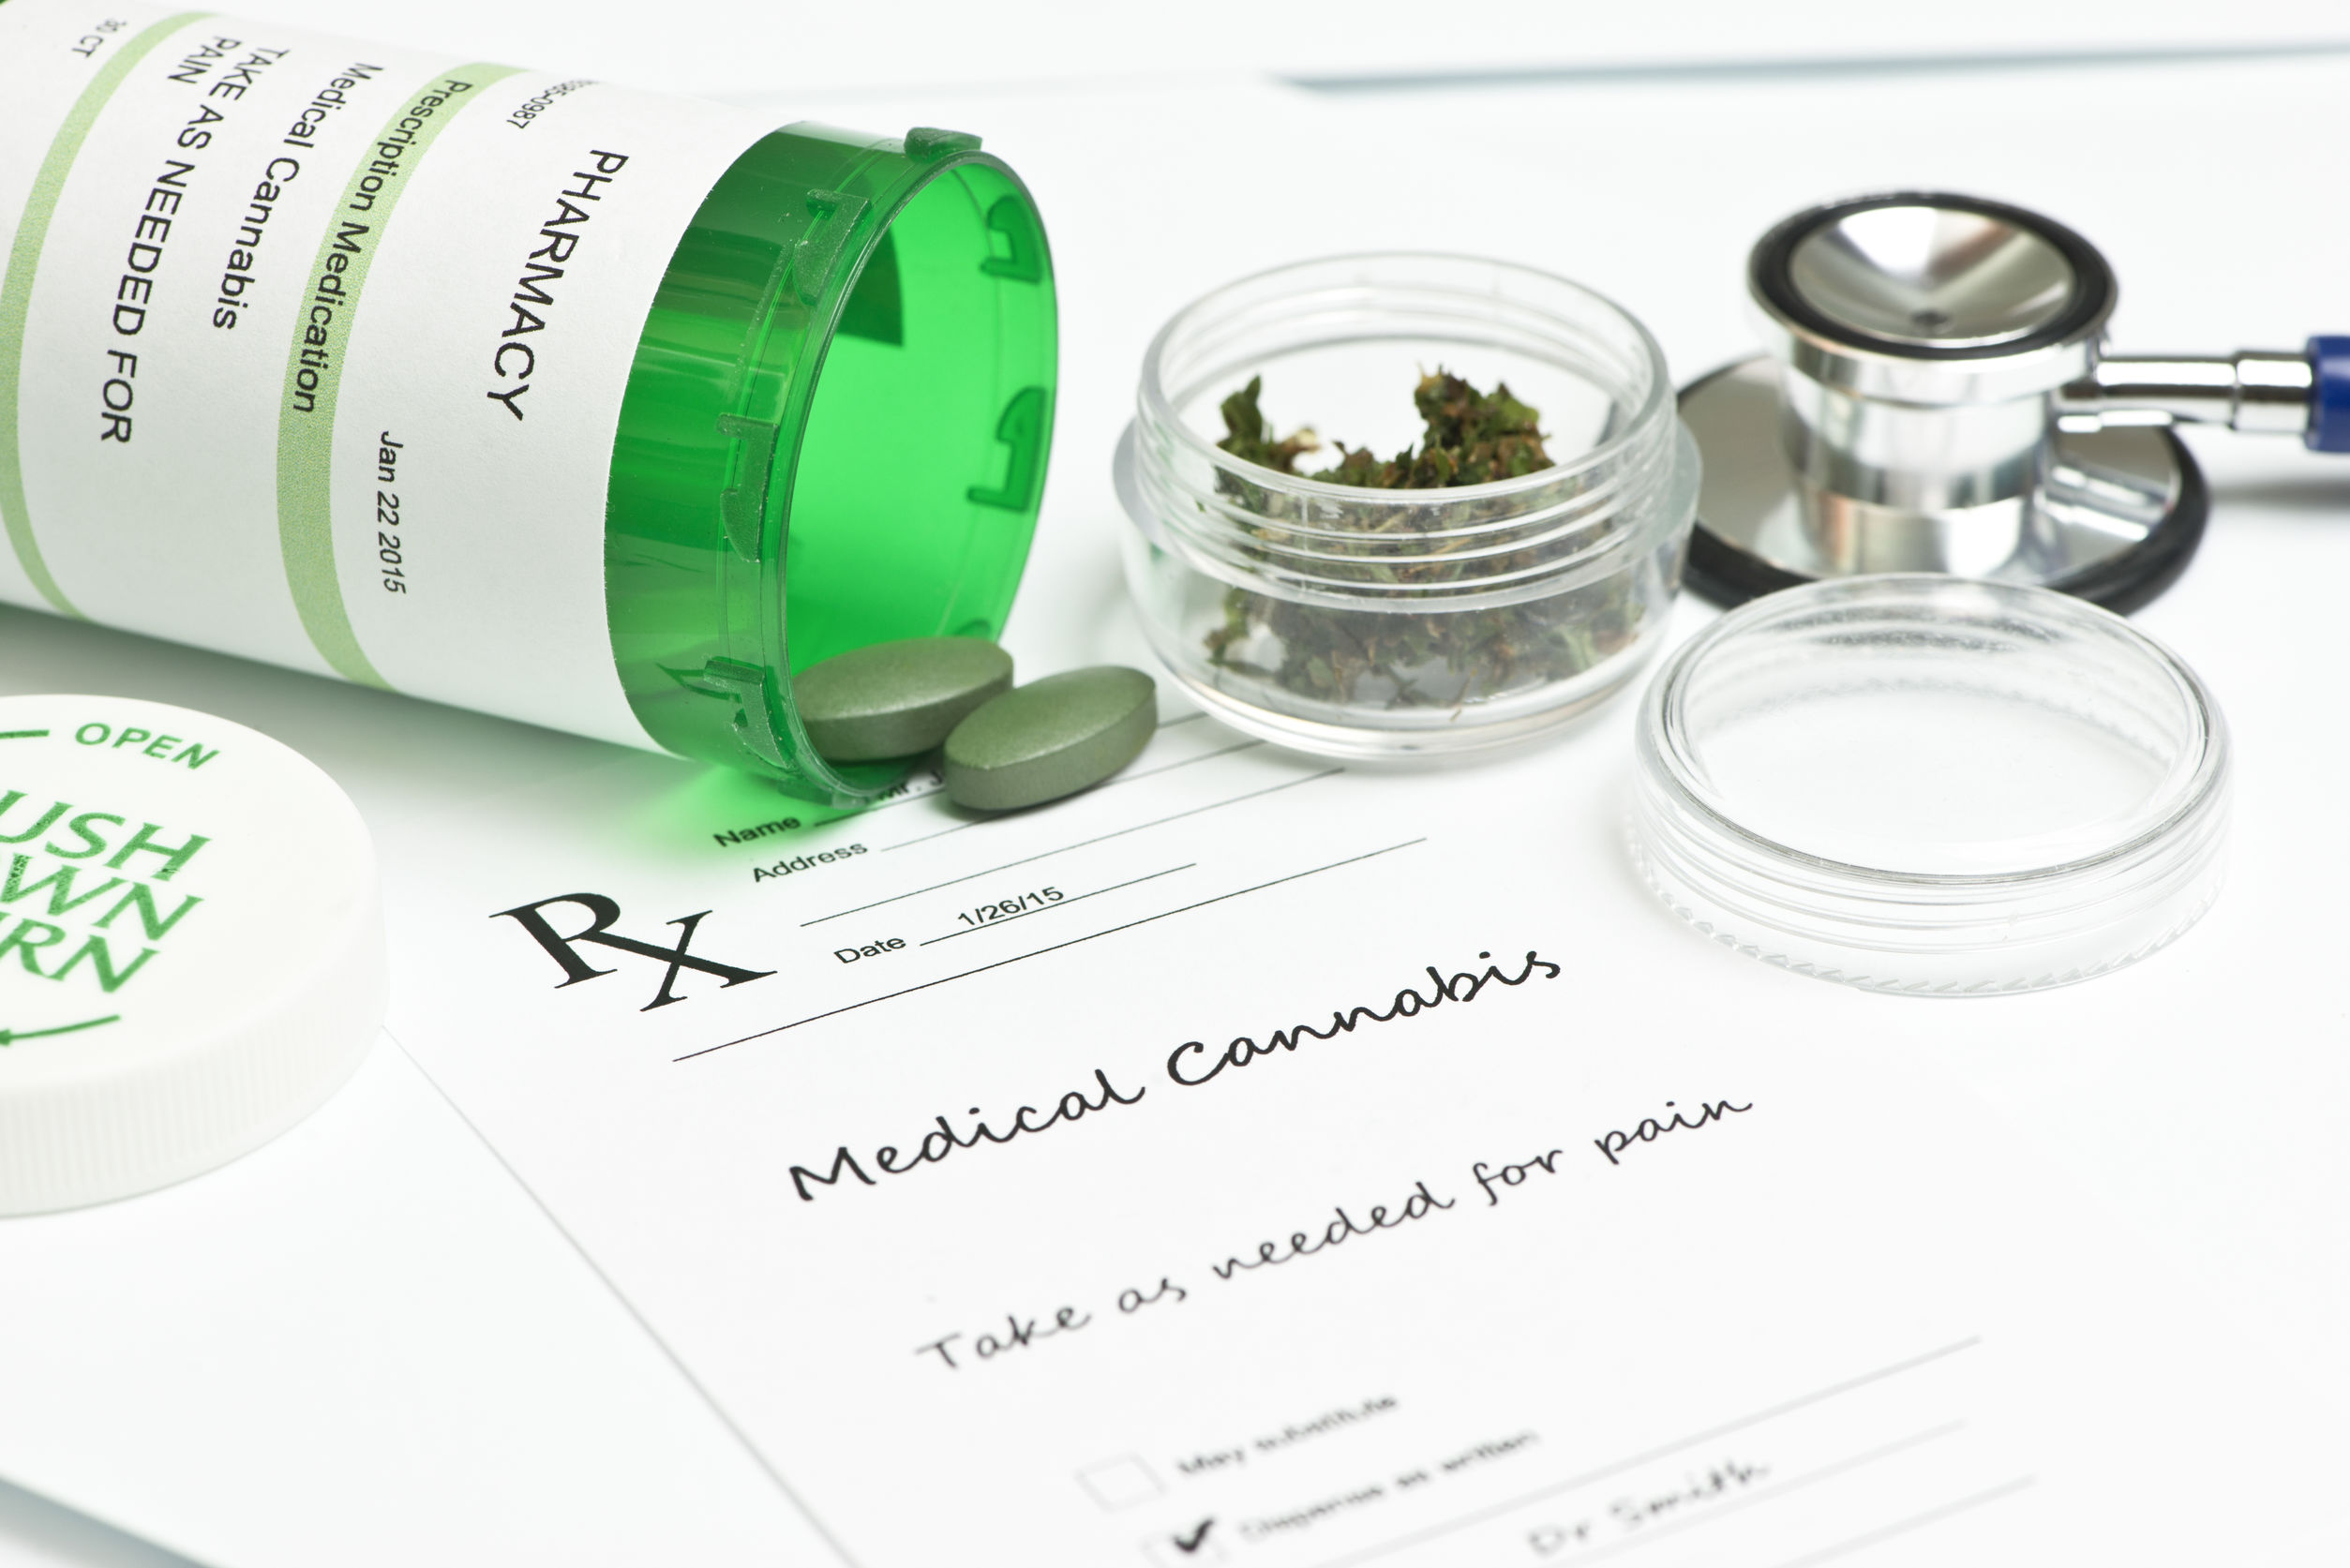 What Employers Need To Know About Alabama's Medical Cannabis Law